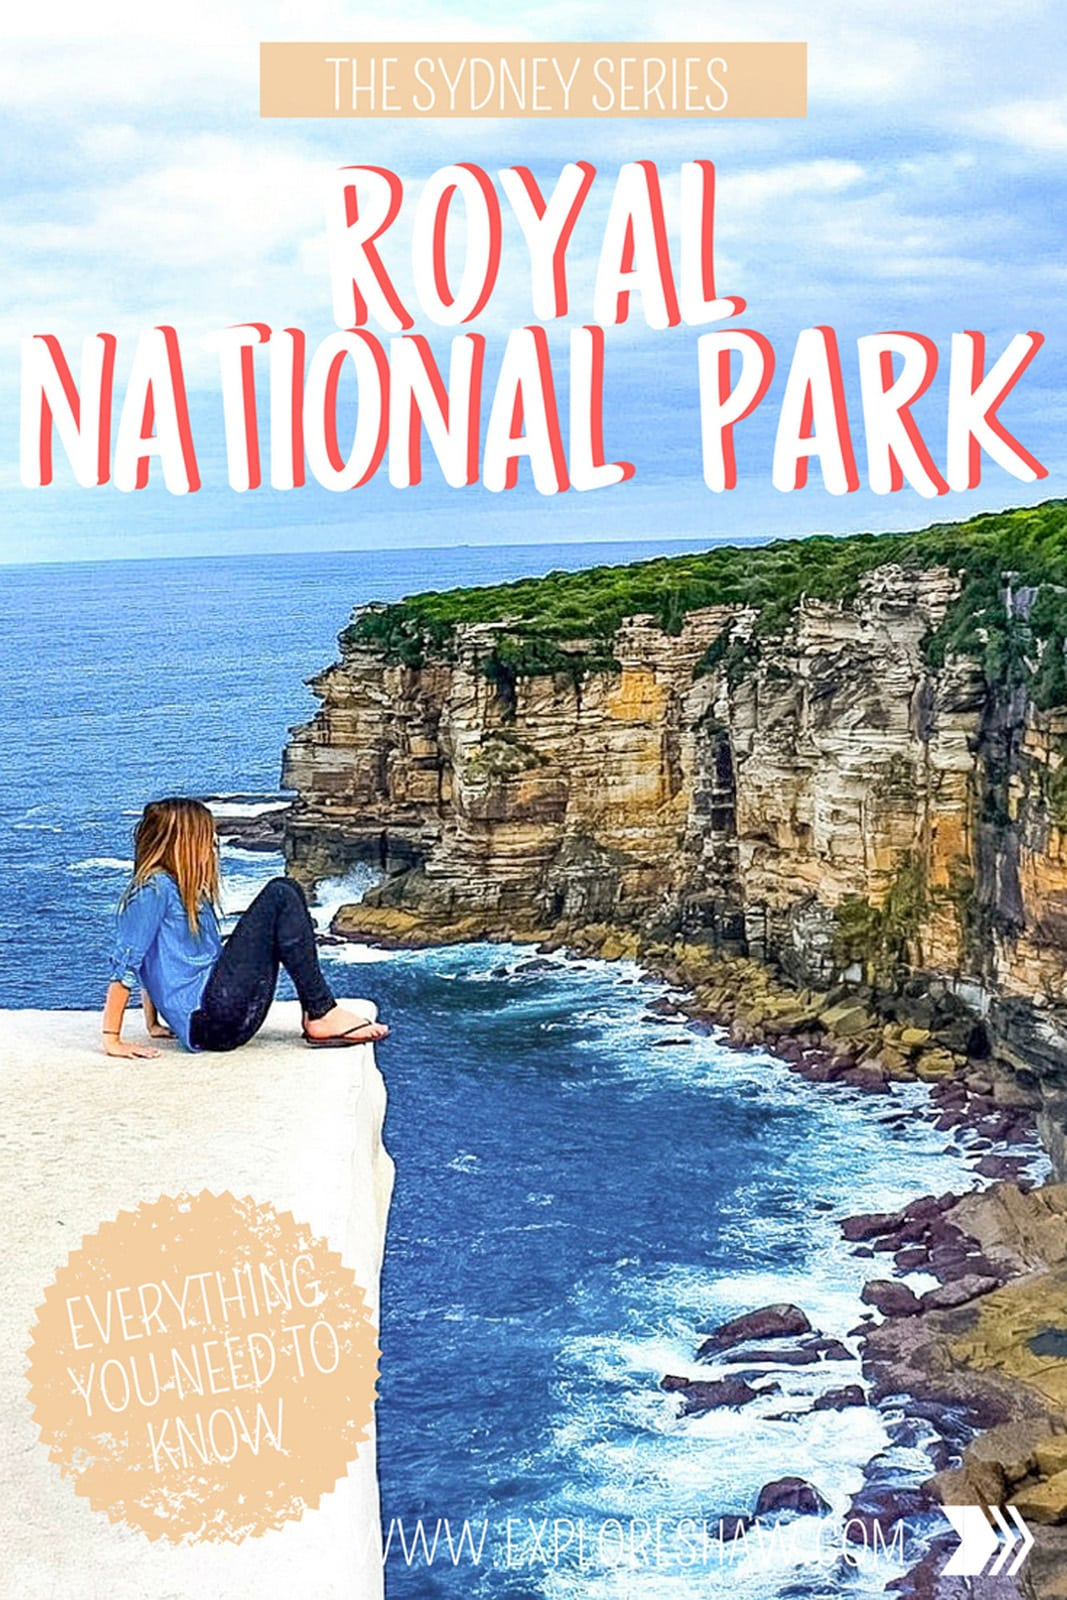 Everything you need to know to hike to and find Wedding Cake Rock in Royal National Park. Make sure you're prepared before you go! #Australia #Sydney #NewSouthWales